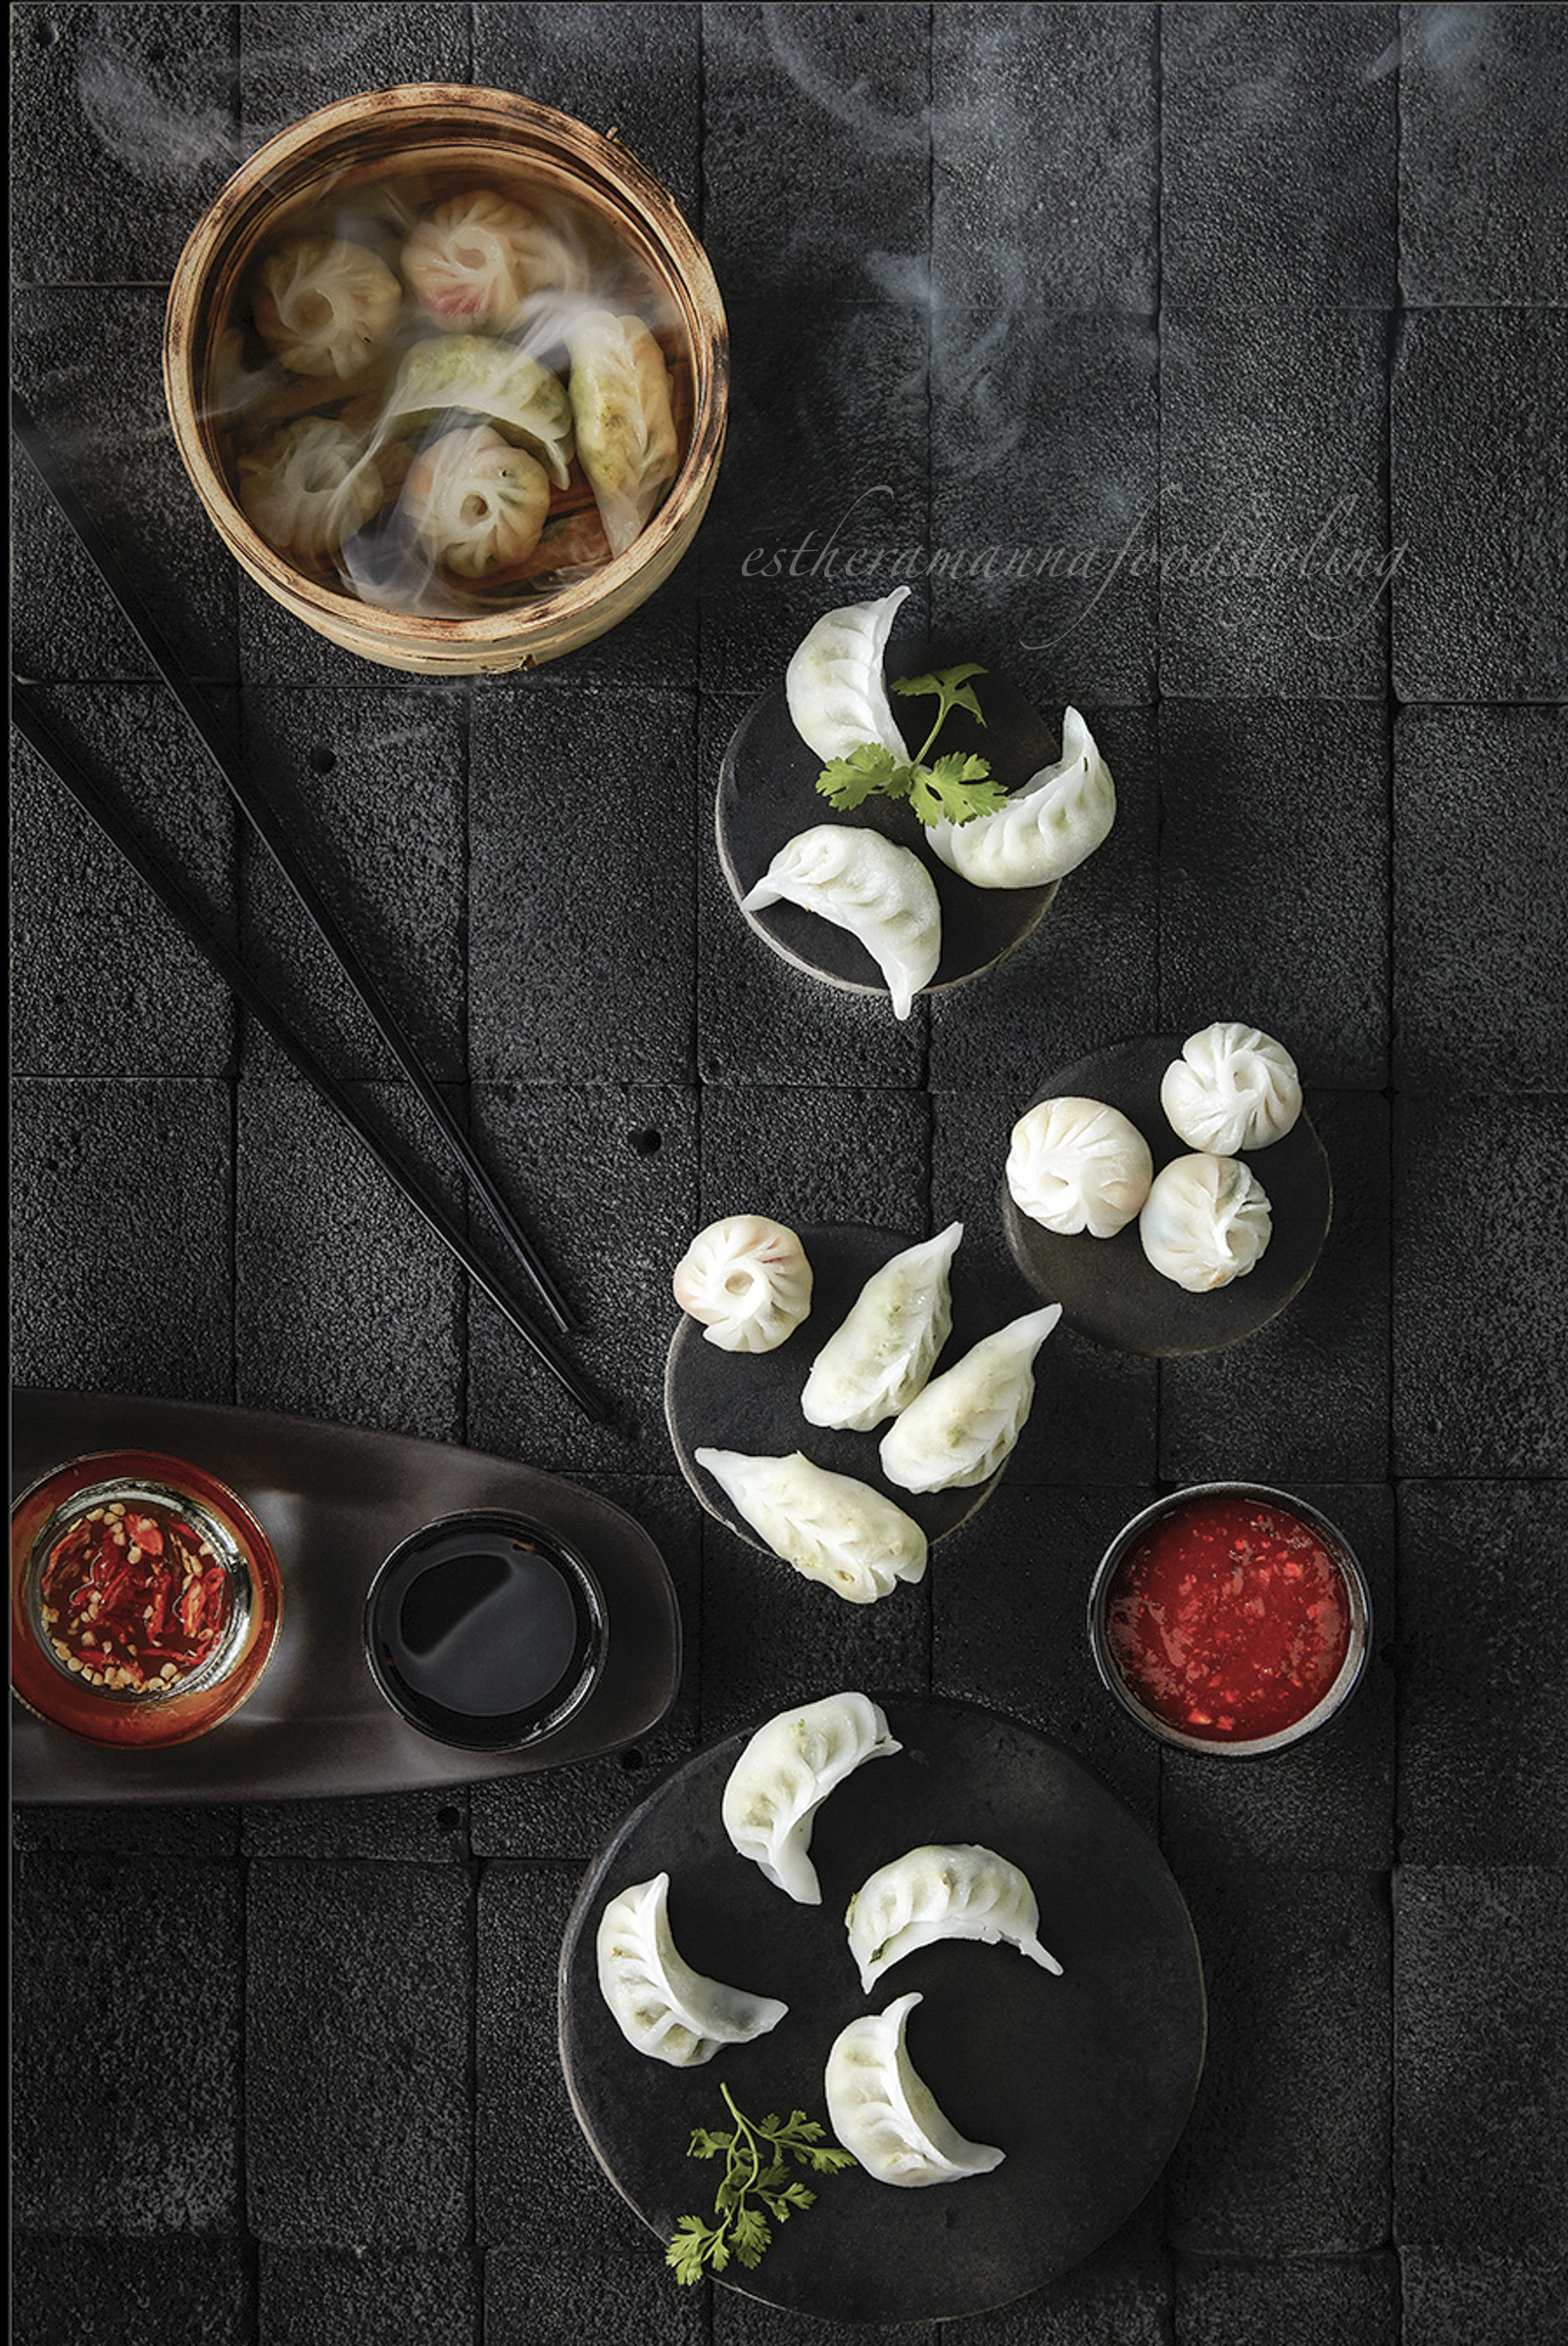 Sushi,Steam,Sauces and chutneys,Dimsums